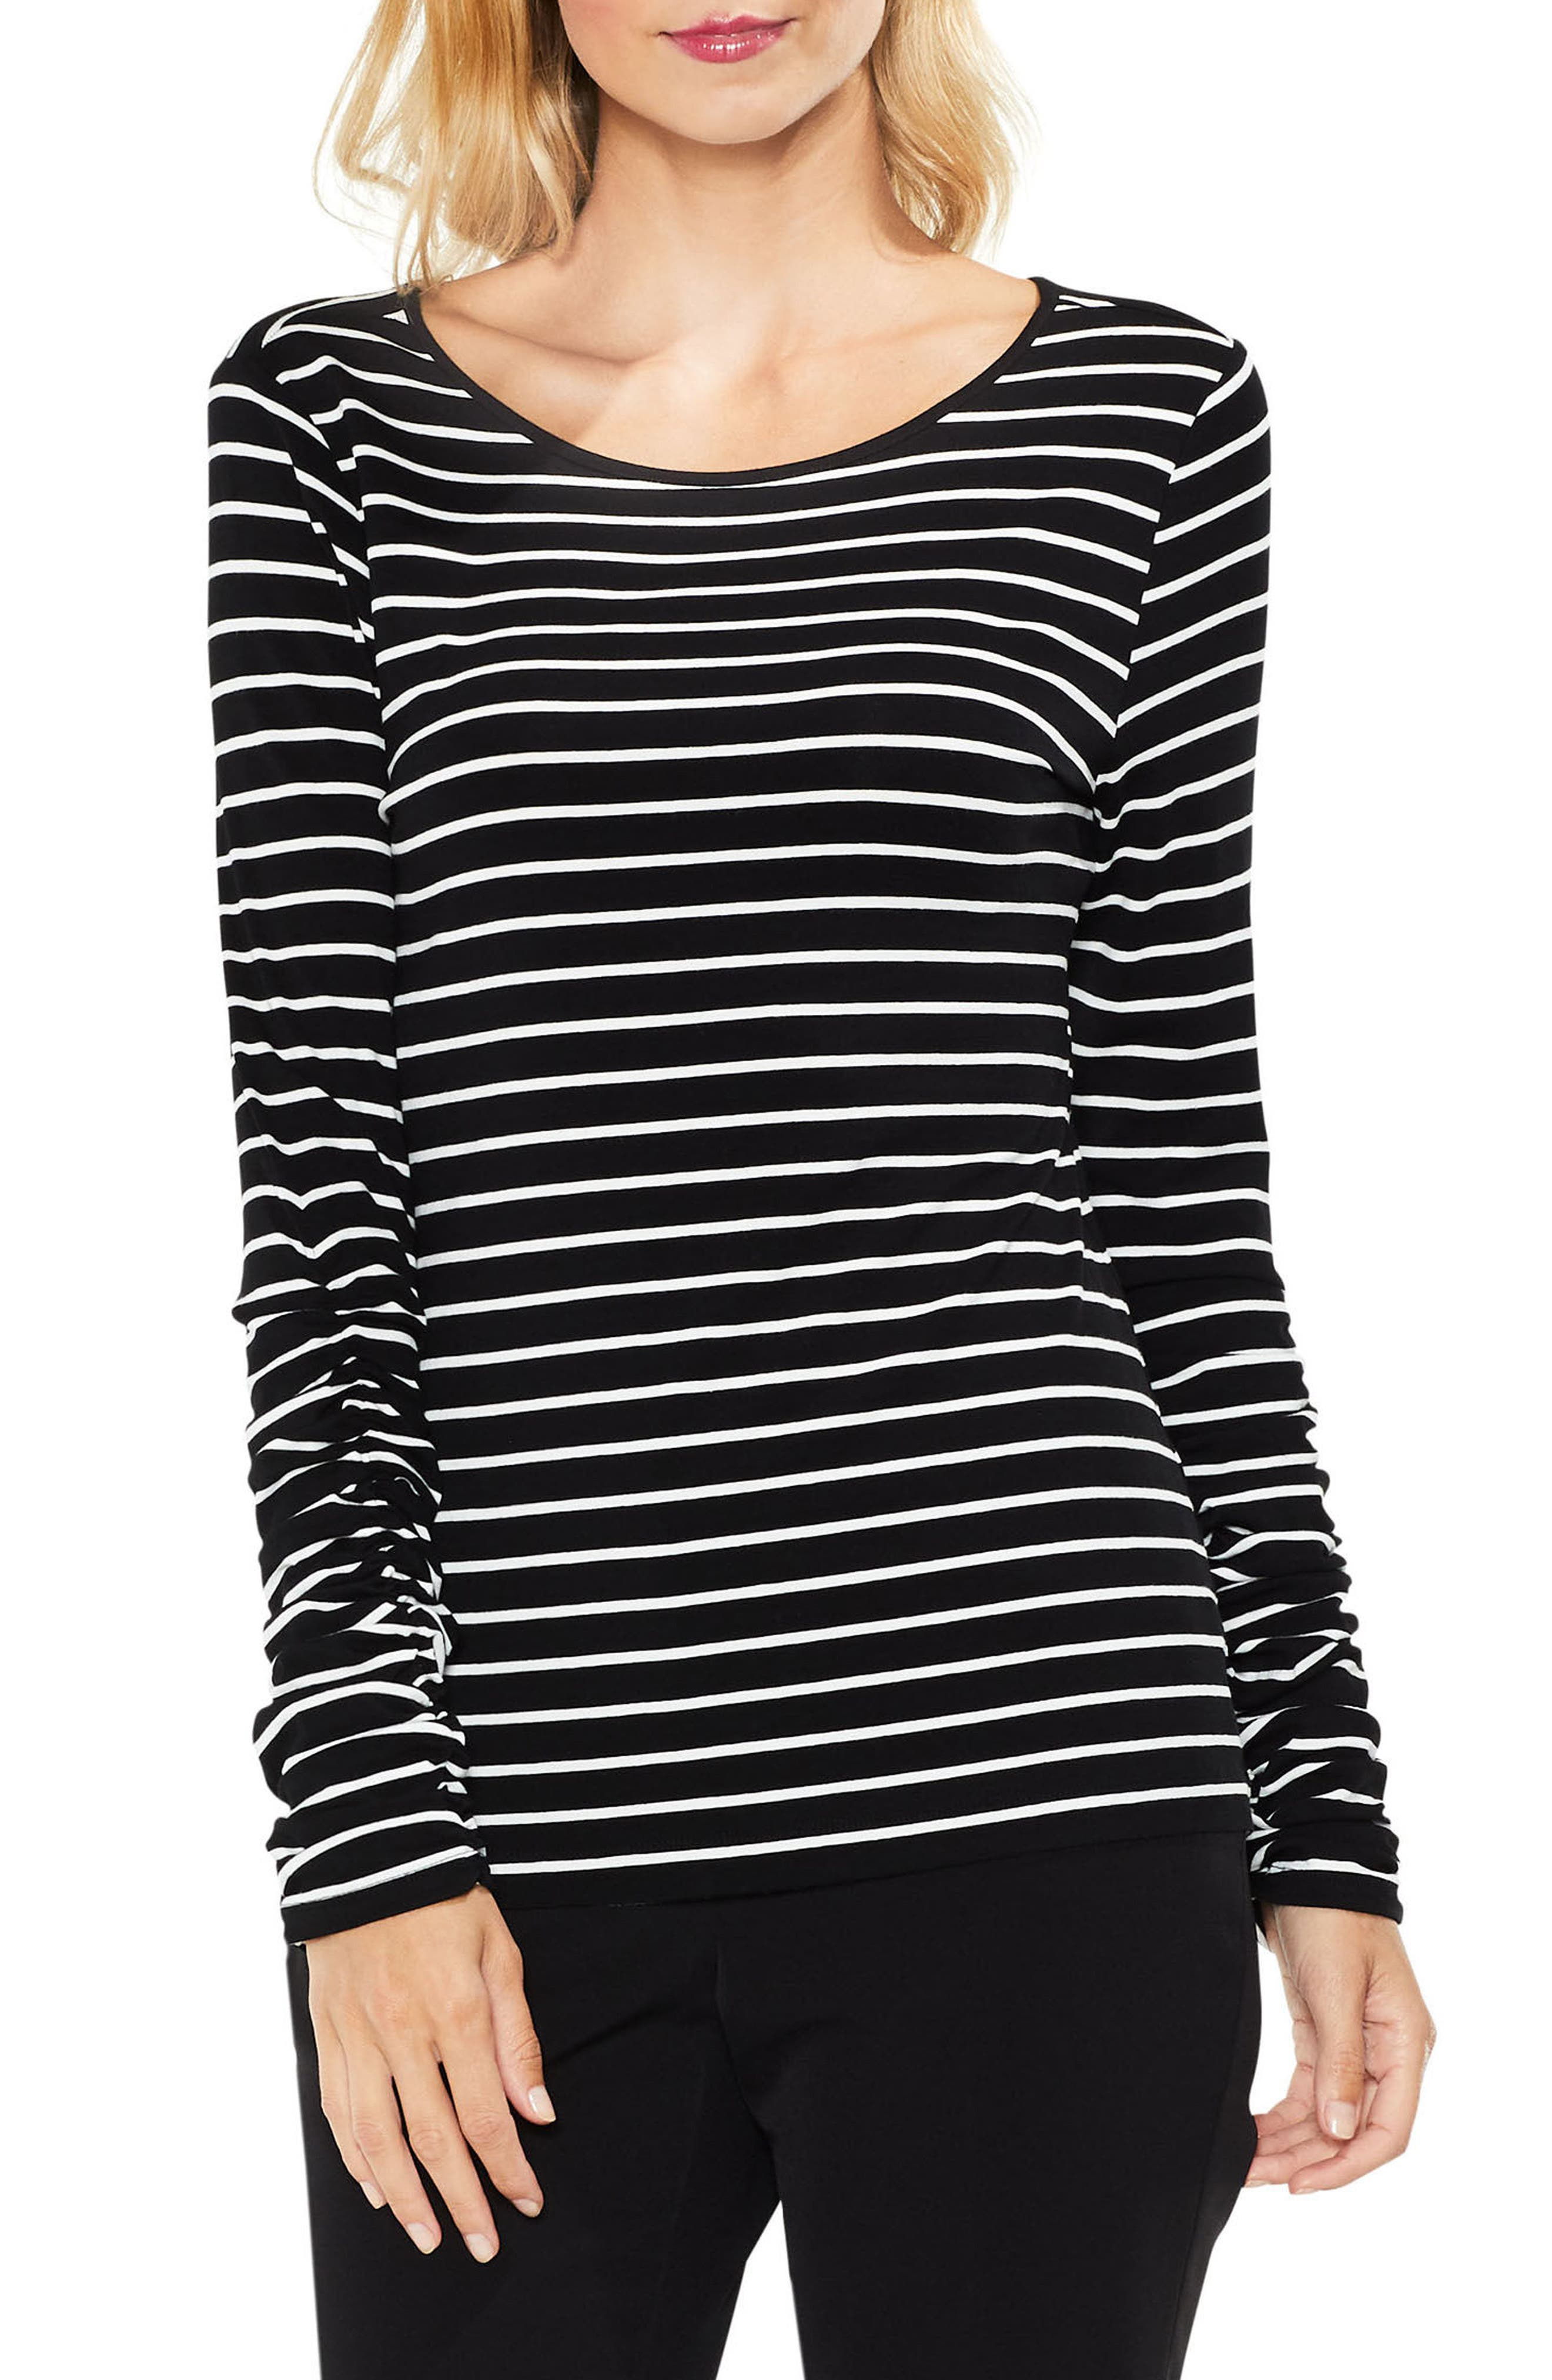 Main Image - Vince Camuto Ruched Linear Stripe Top (Regular & Petite)